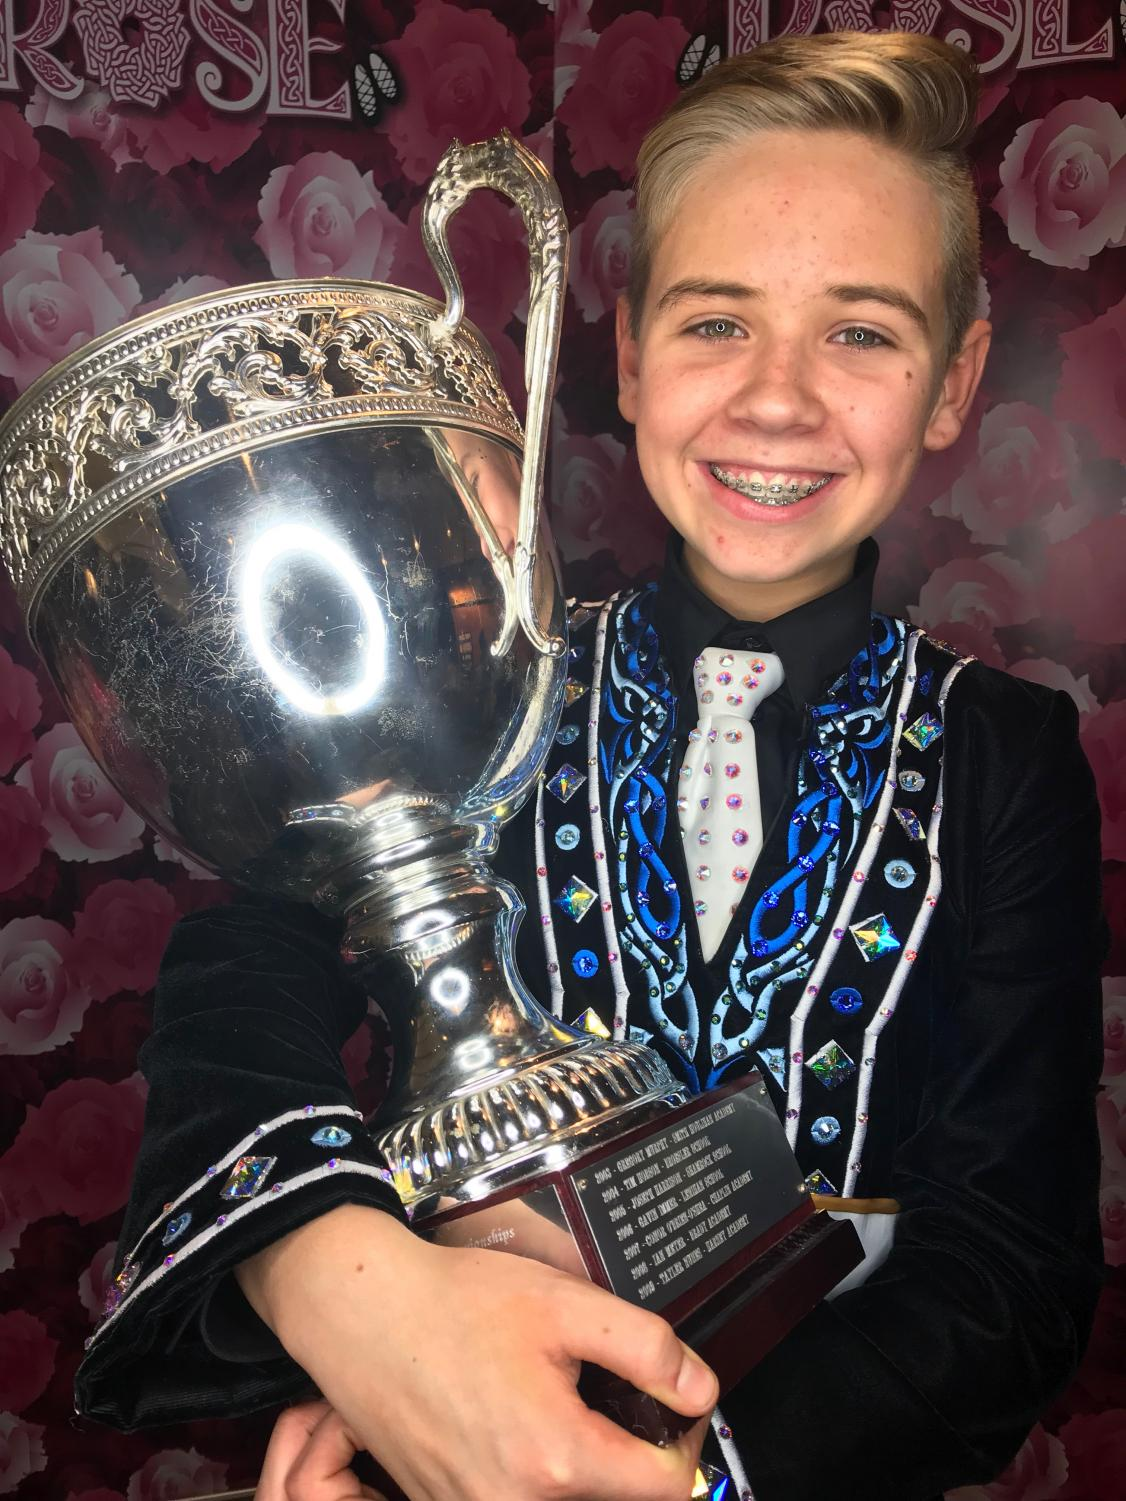 Abington freshman Daniel Murtagh came in 1st in the New England Oireachtas Regionals on November 16, 2018 held in Hartford at the Convention Center.